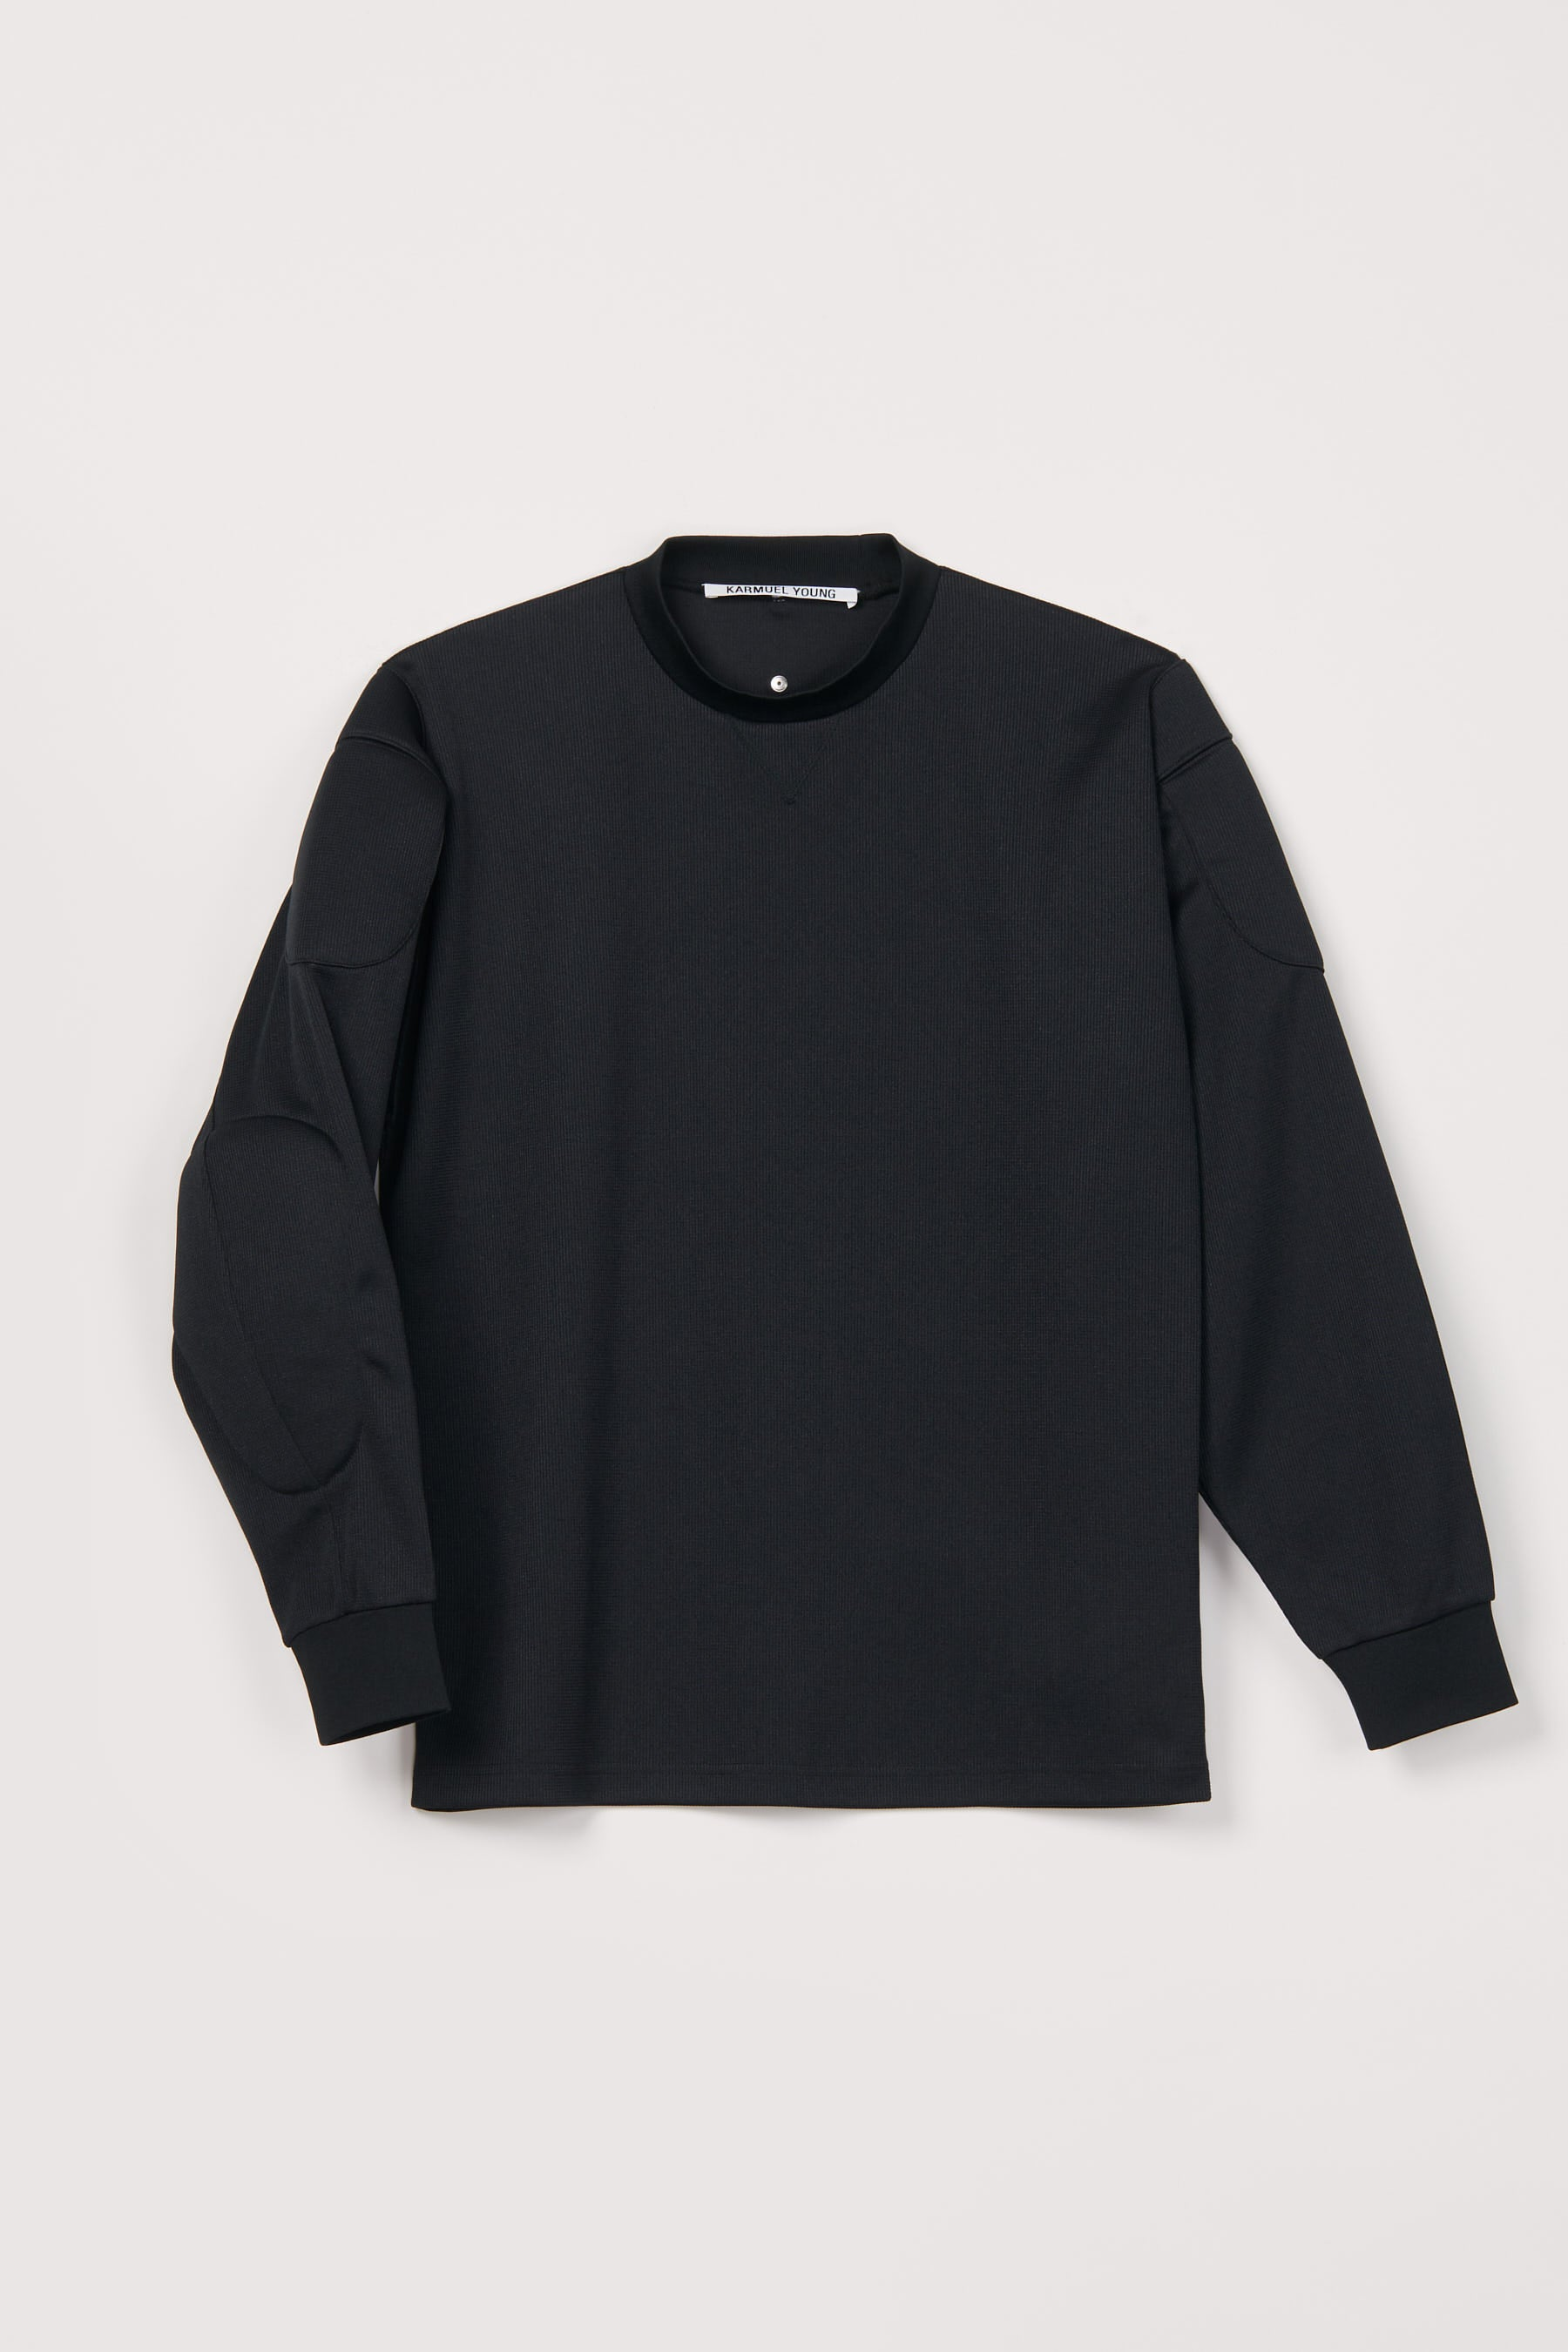 Black Strong Arm Padded Sweatshirt